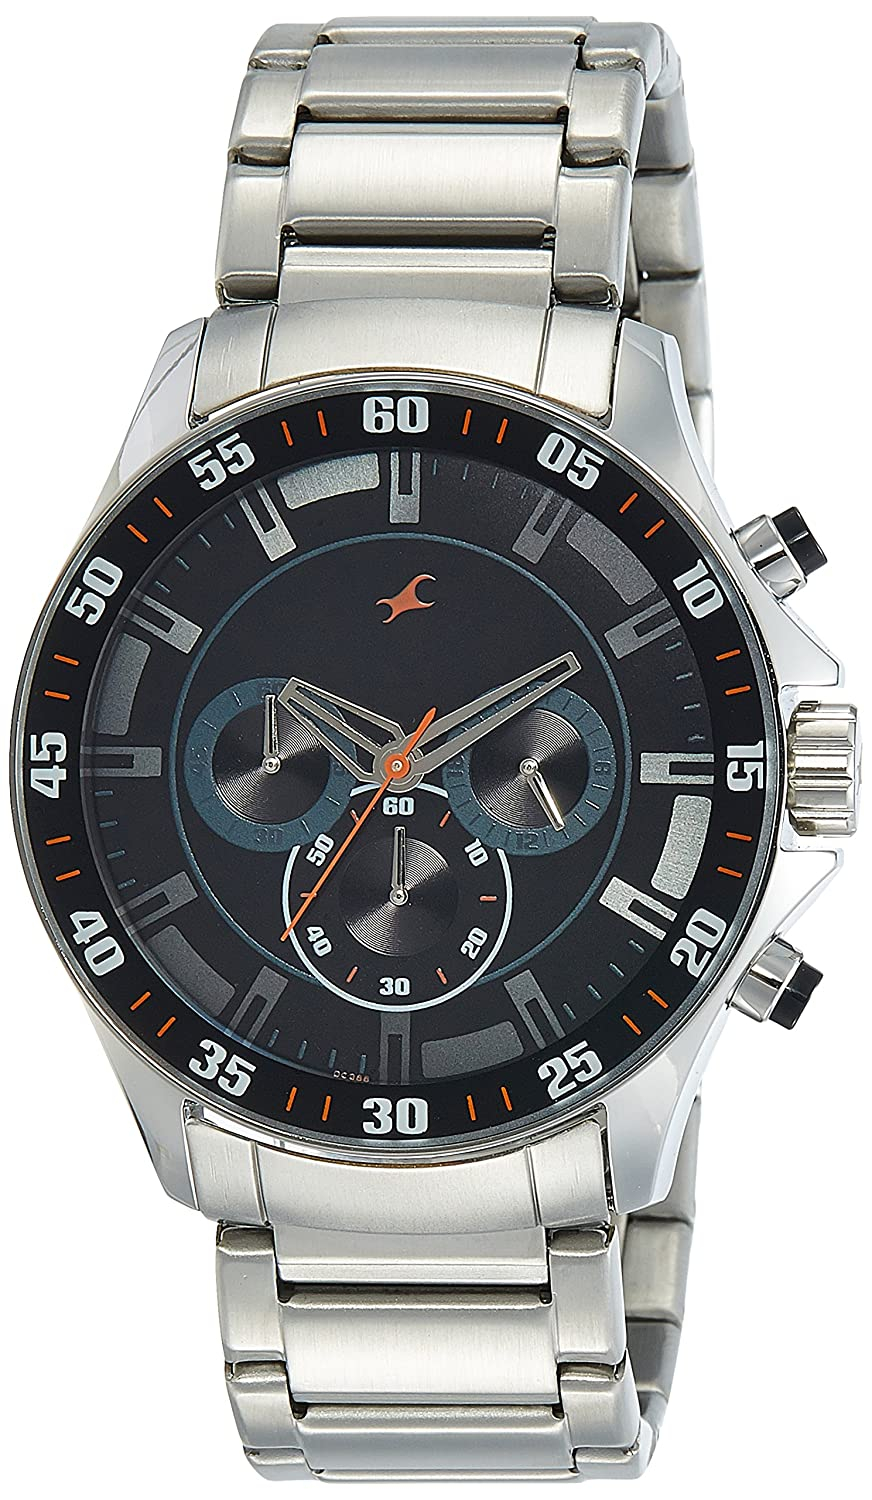 Fastrack Analog Black Dial Best Mens Watches Under 5000 in India to buy in 2019 - Reviews & Buyers Guide